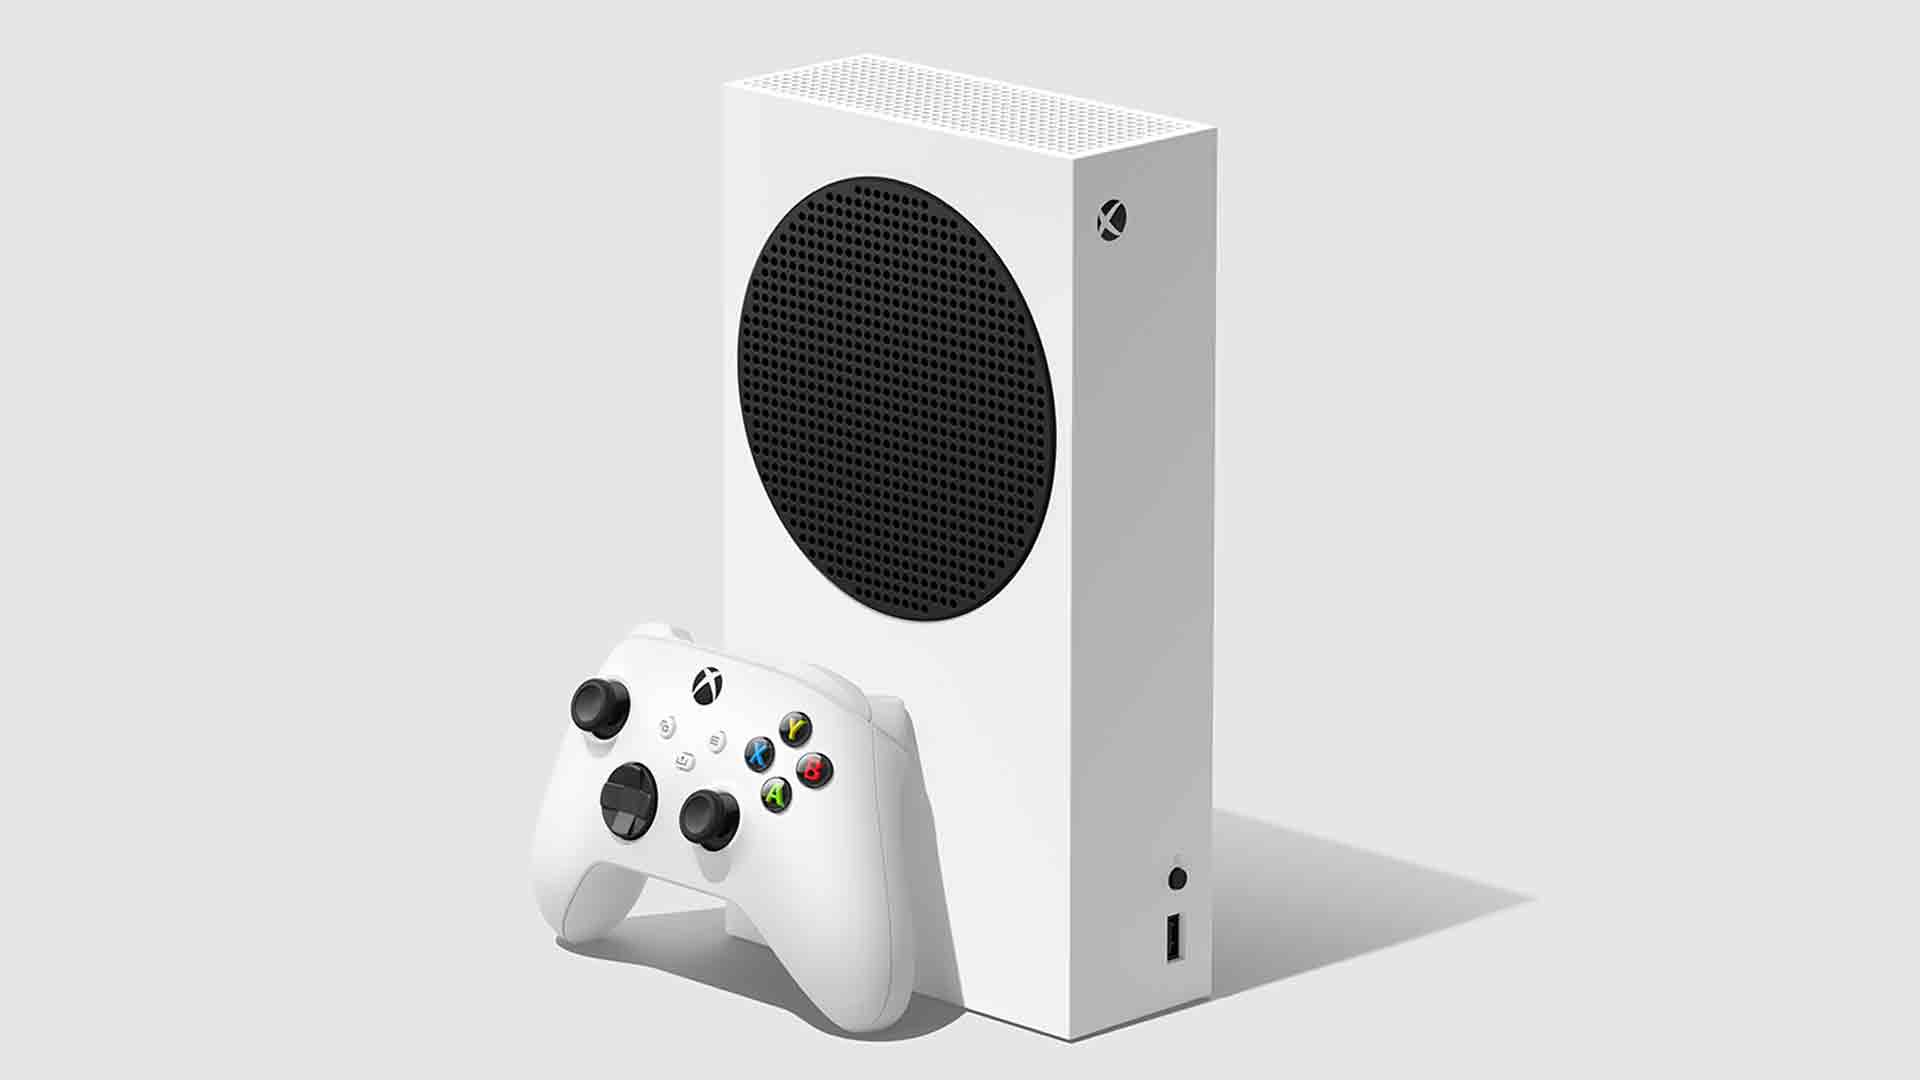 Xbox Series X release date and pricing